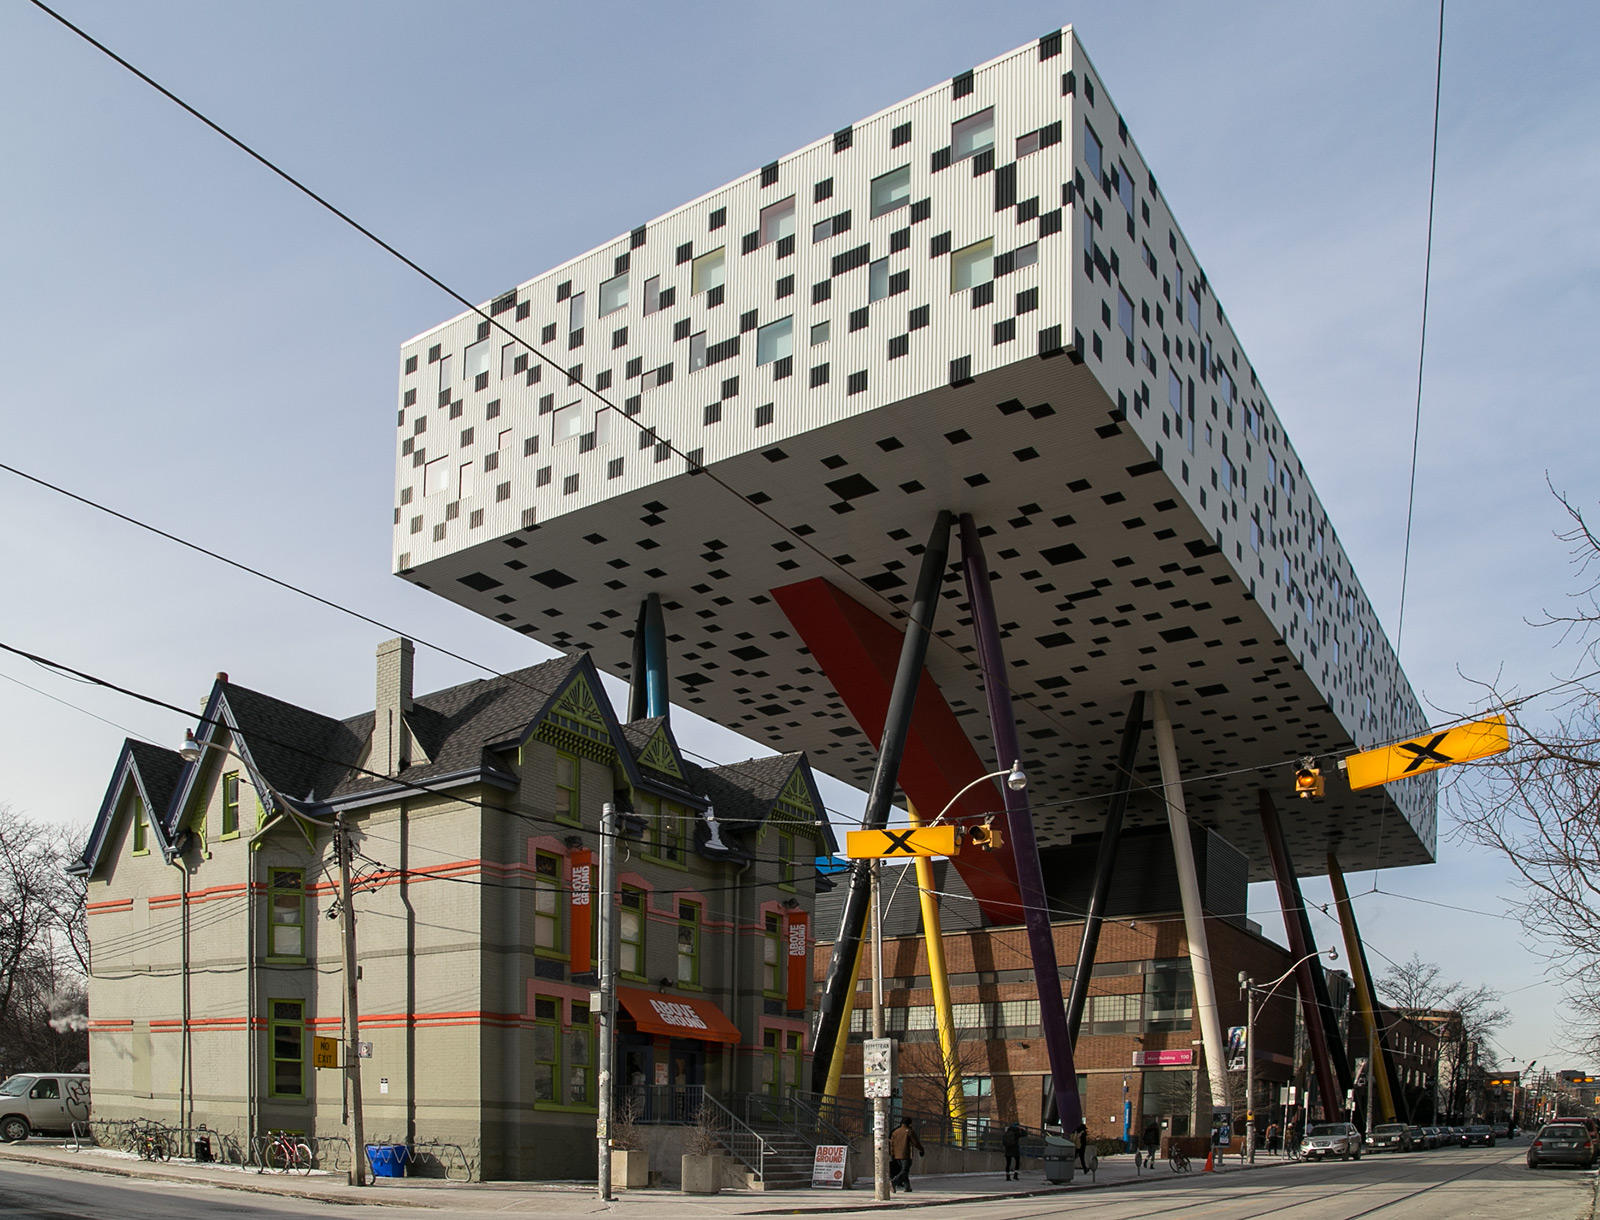 20140122. OCAD University's Sharp Centre for Design (Toronto) is a box on legs, 26m above ground (Alsop Architects, 2004).